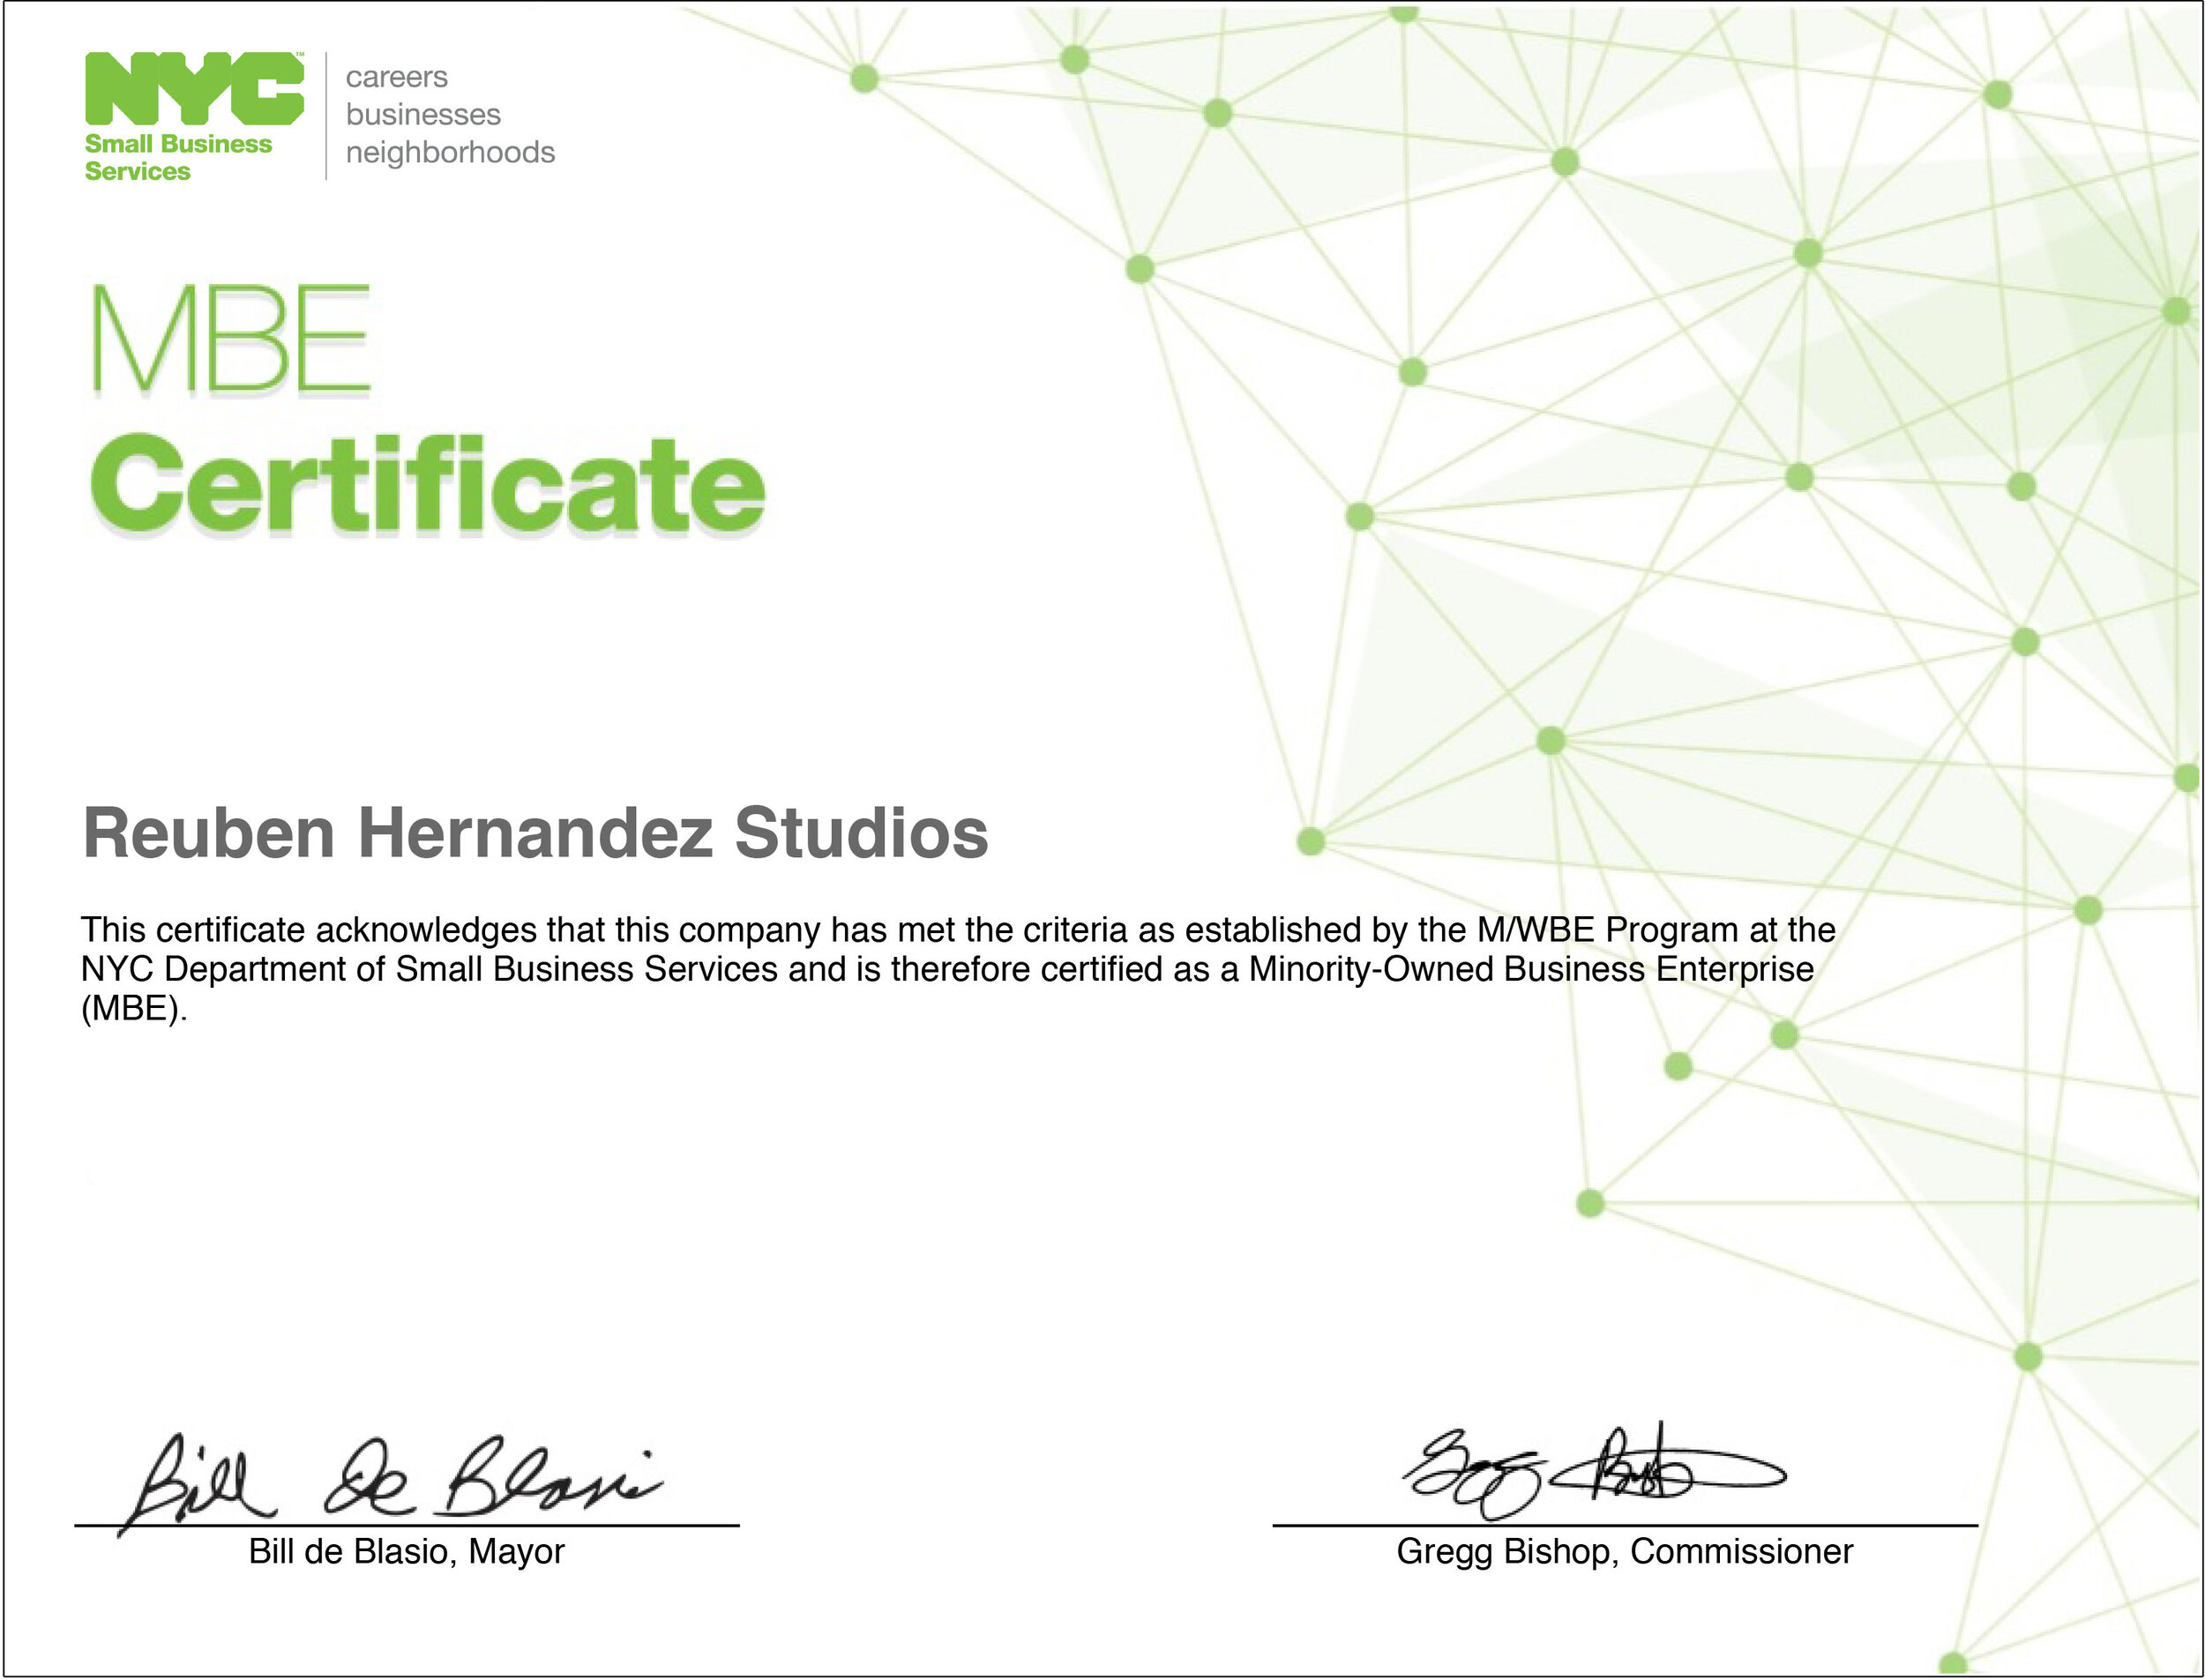 Reuben Hernandez Studios, MBE certified MBE certification, NYC Department of Small Business Services, M/WBE Certification